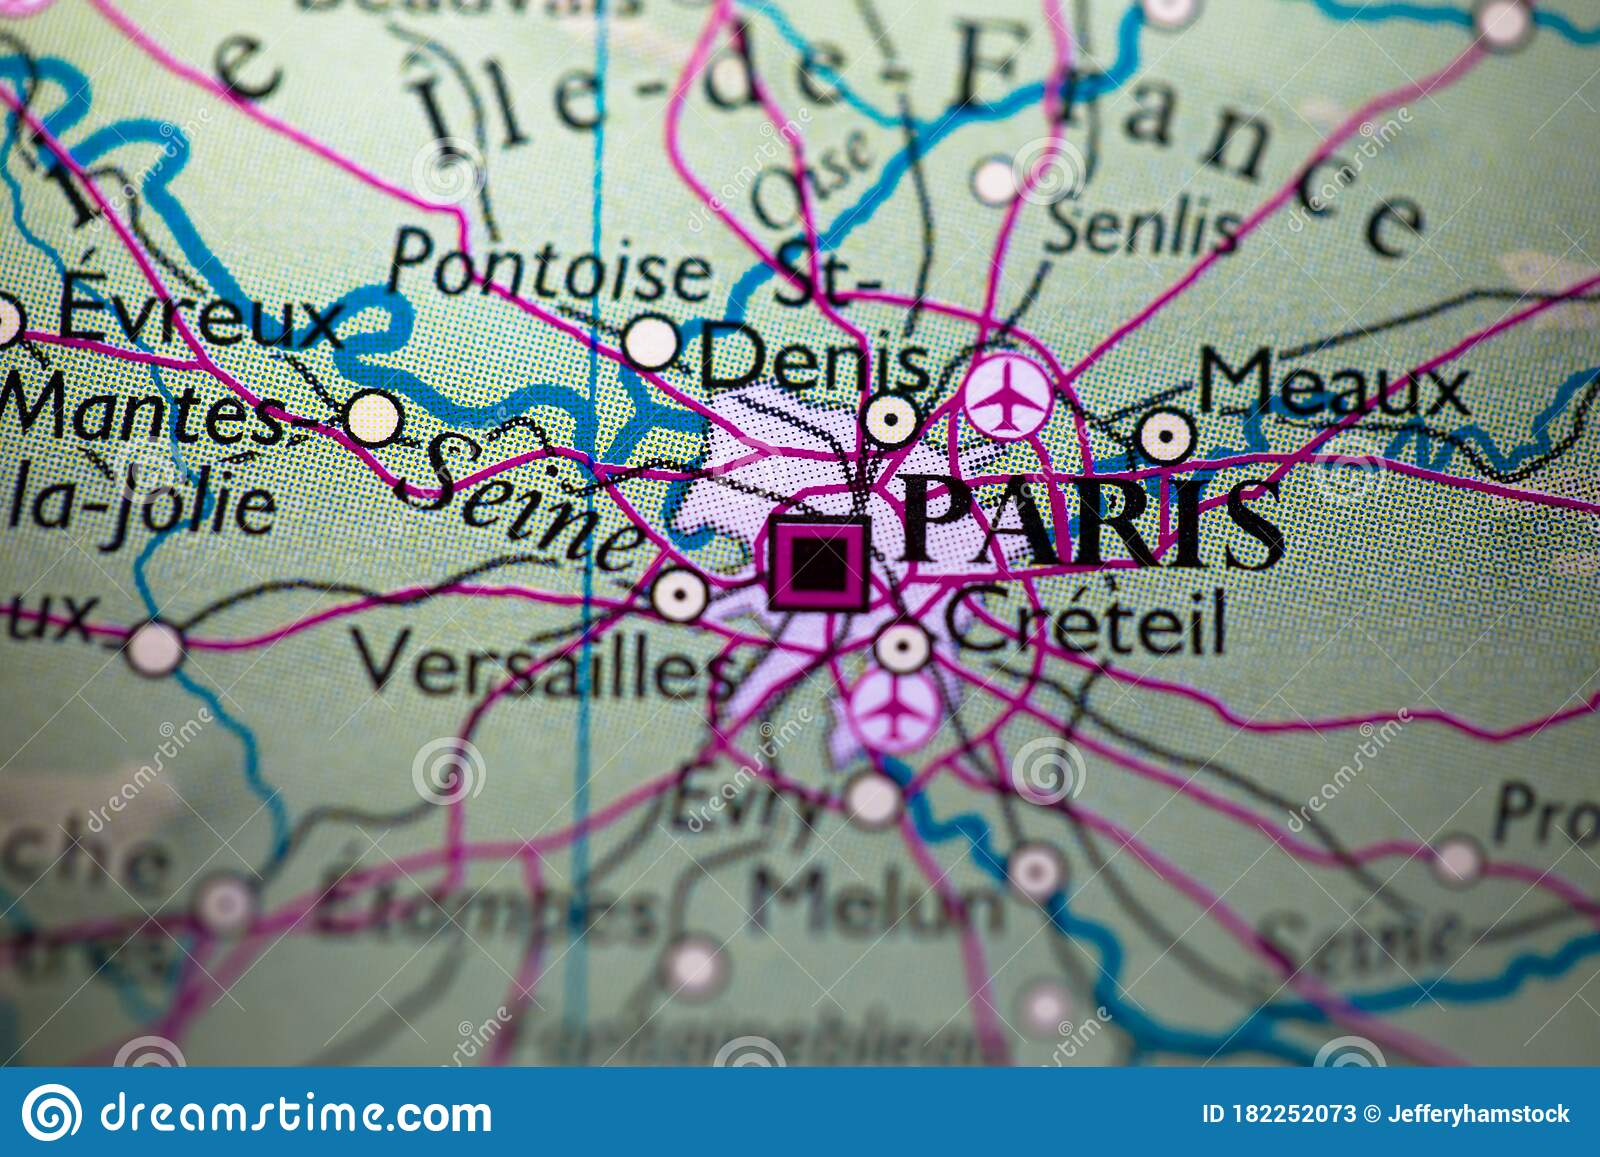 Picture of: Geographical Map Location Of Paris City In France Europe Continent On Atlas Stock Image Image Of Geography Geographic 182252073